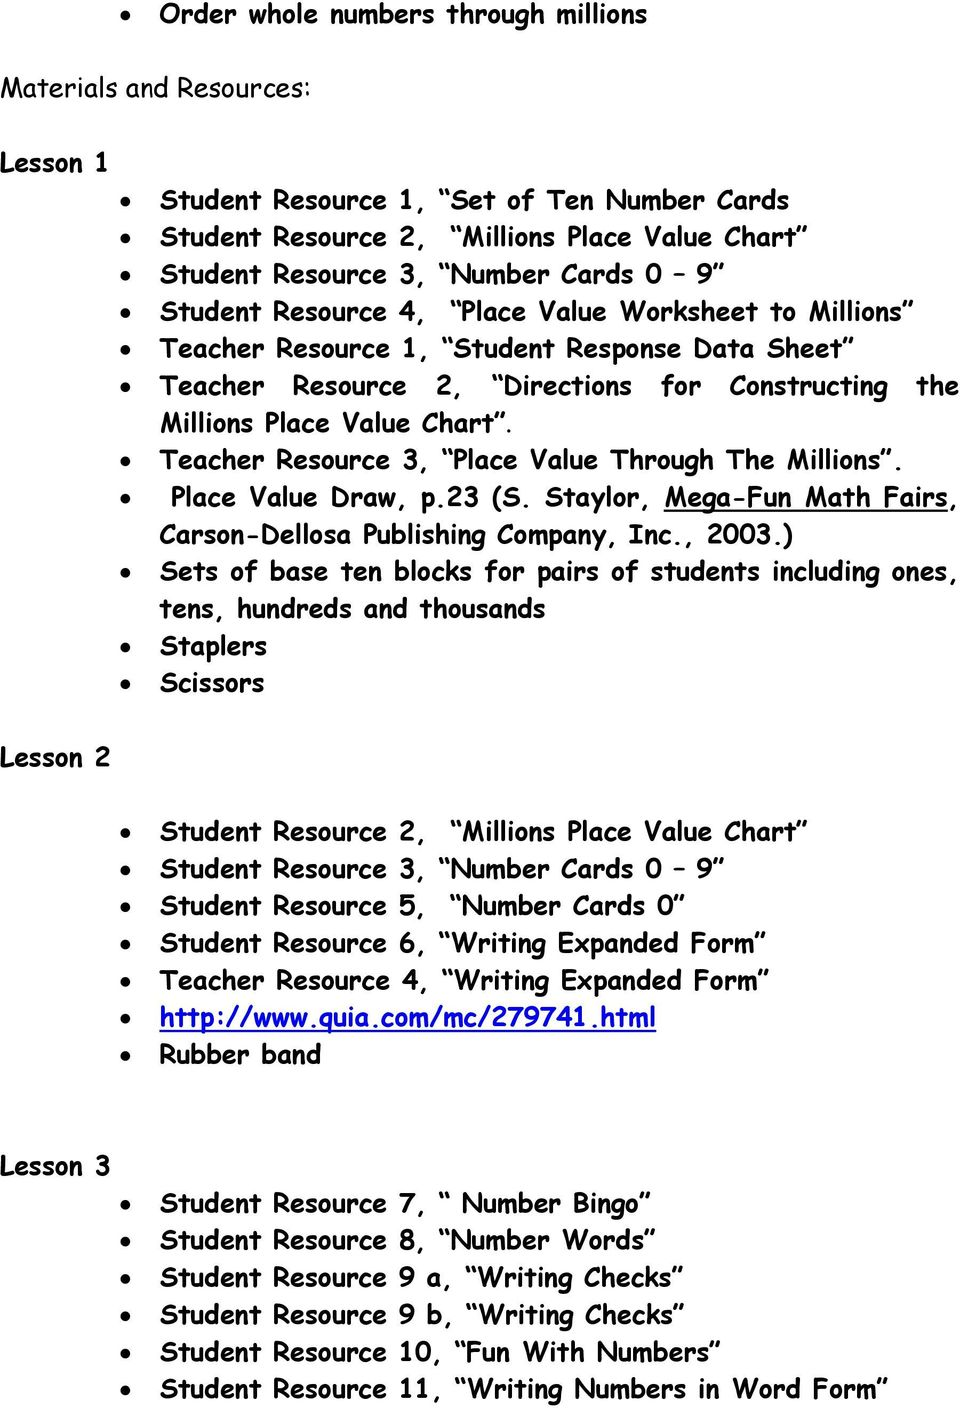 Place value of whole numbers through one million pdf teacher resource 3 place value through the millions place value draw p nvjuhfo Gallery